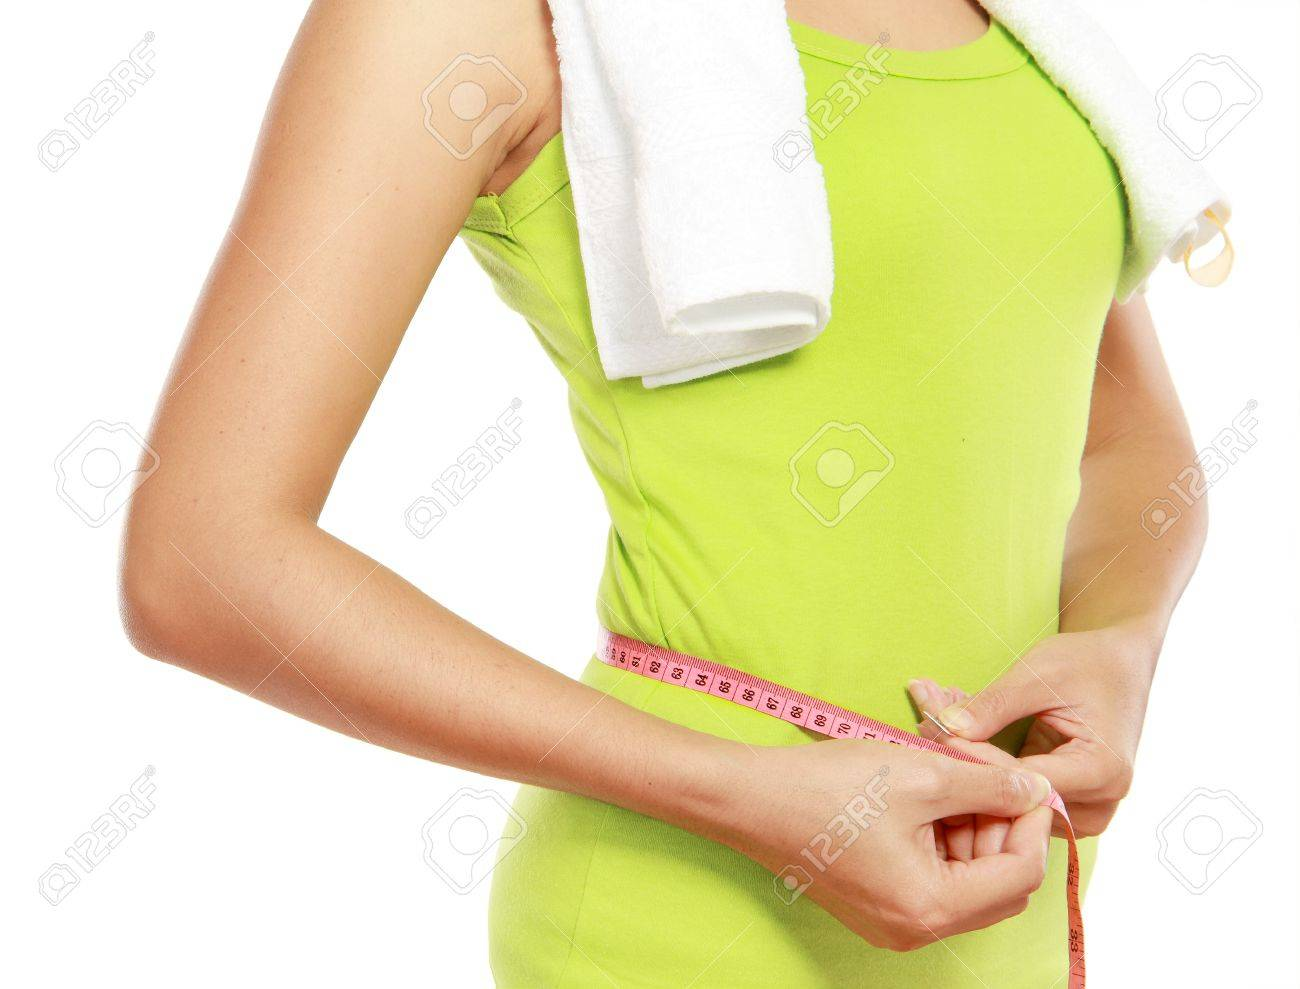 close up of slim female body with measure tape around her body - 12371641